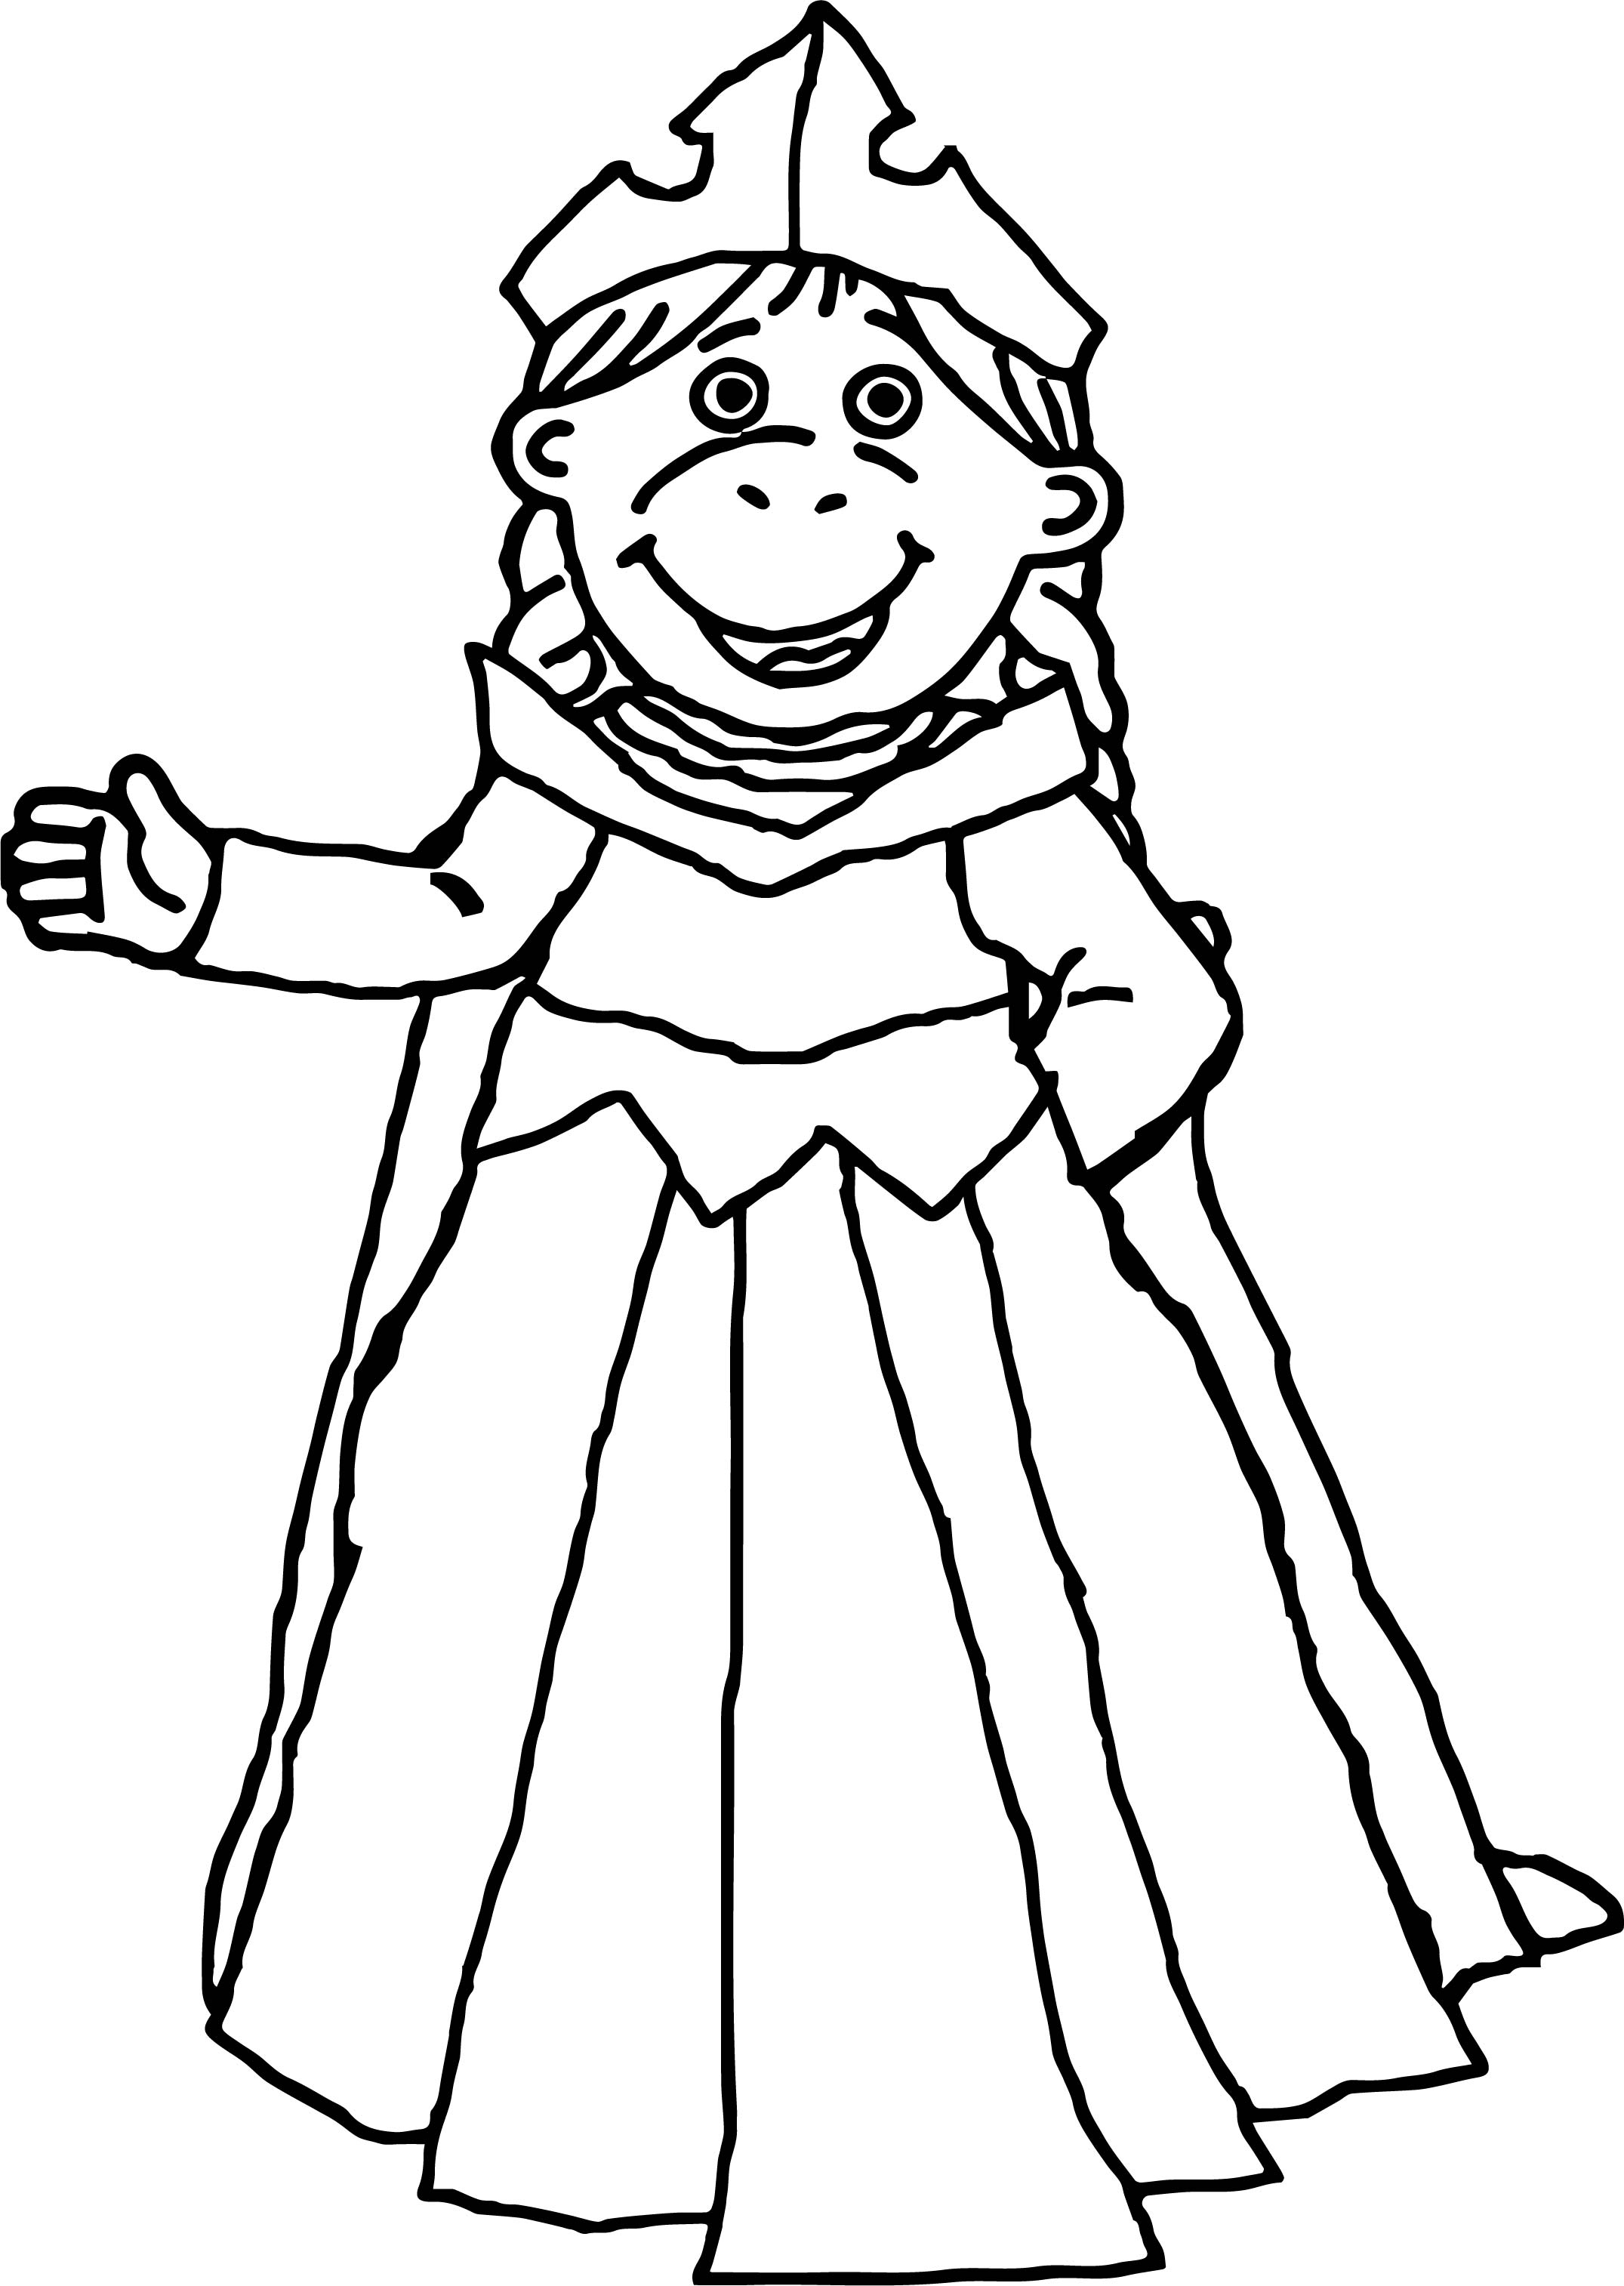 2151x3027 Coloring Pages Kids Best Images About Disney On Princess